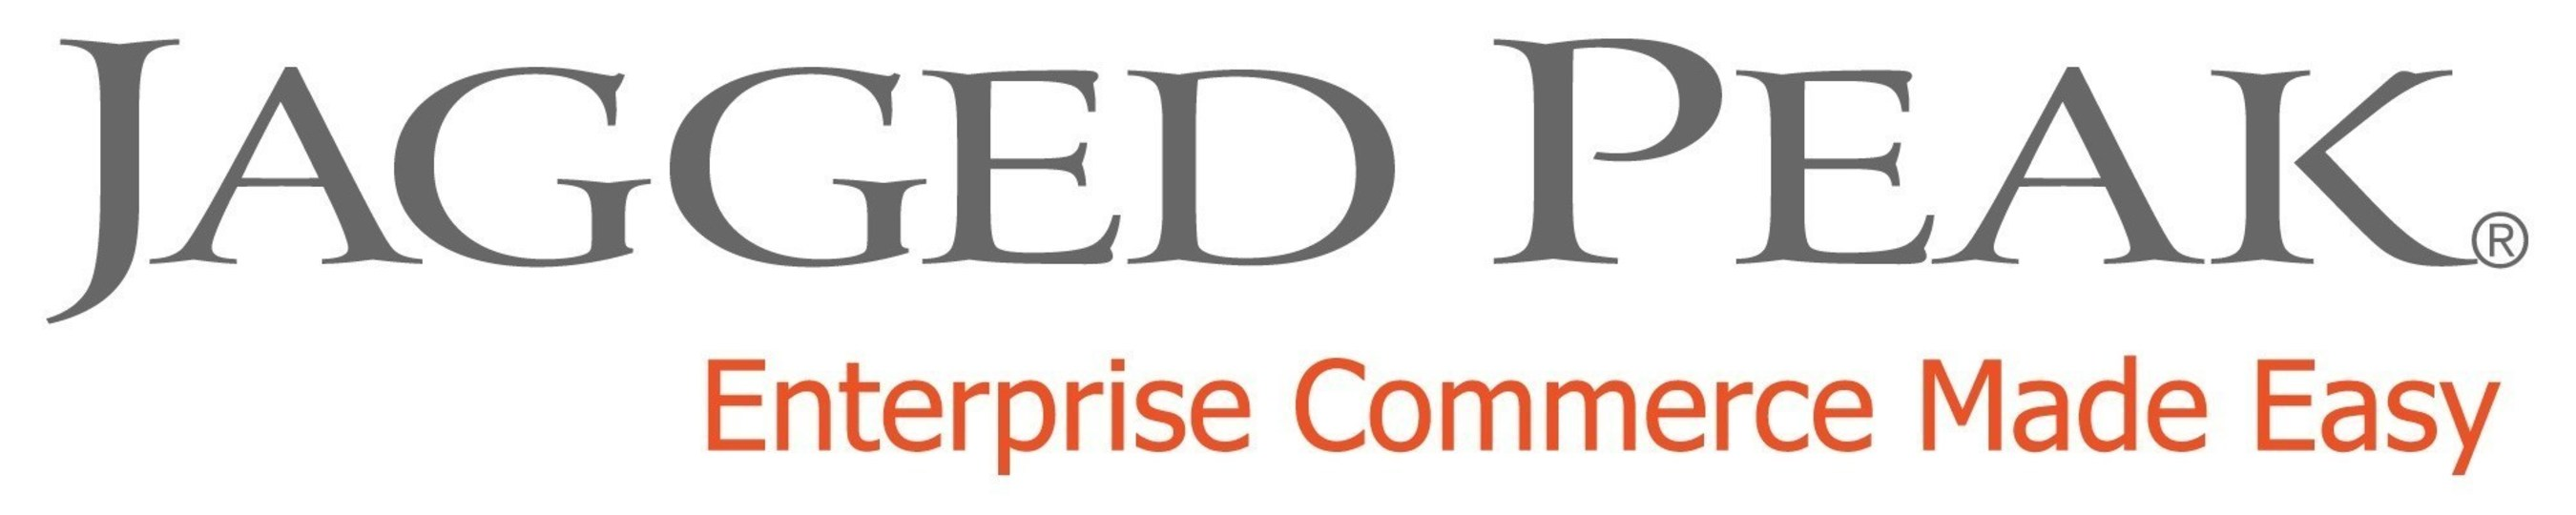 Jagged Peak Accelerates Expansion of its Global Fulfillment Network with New Partner RMD